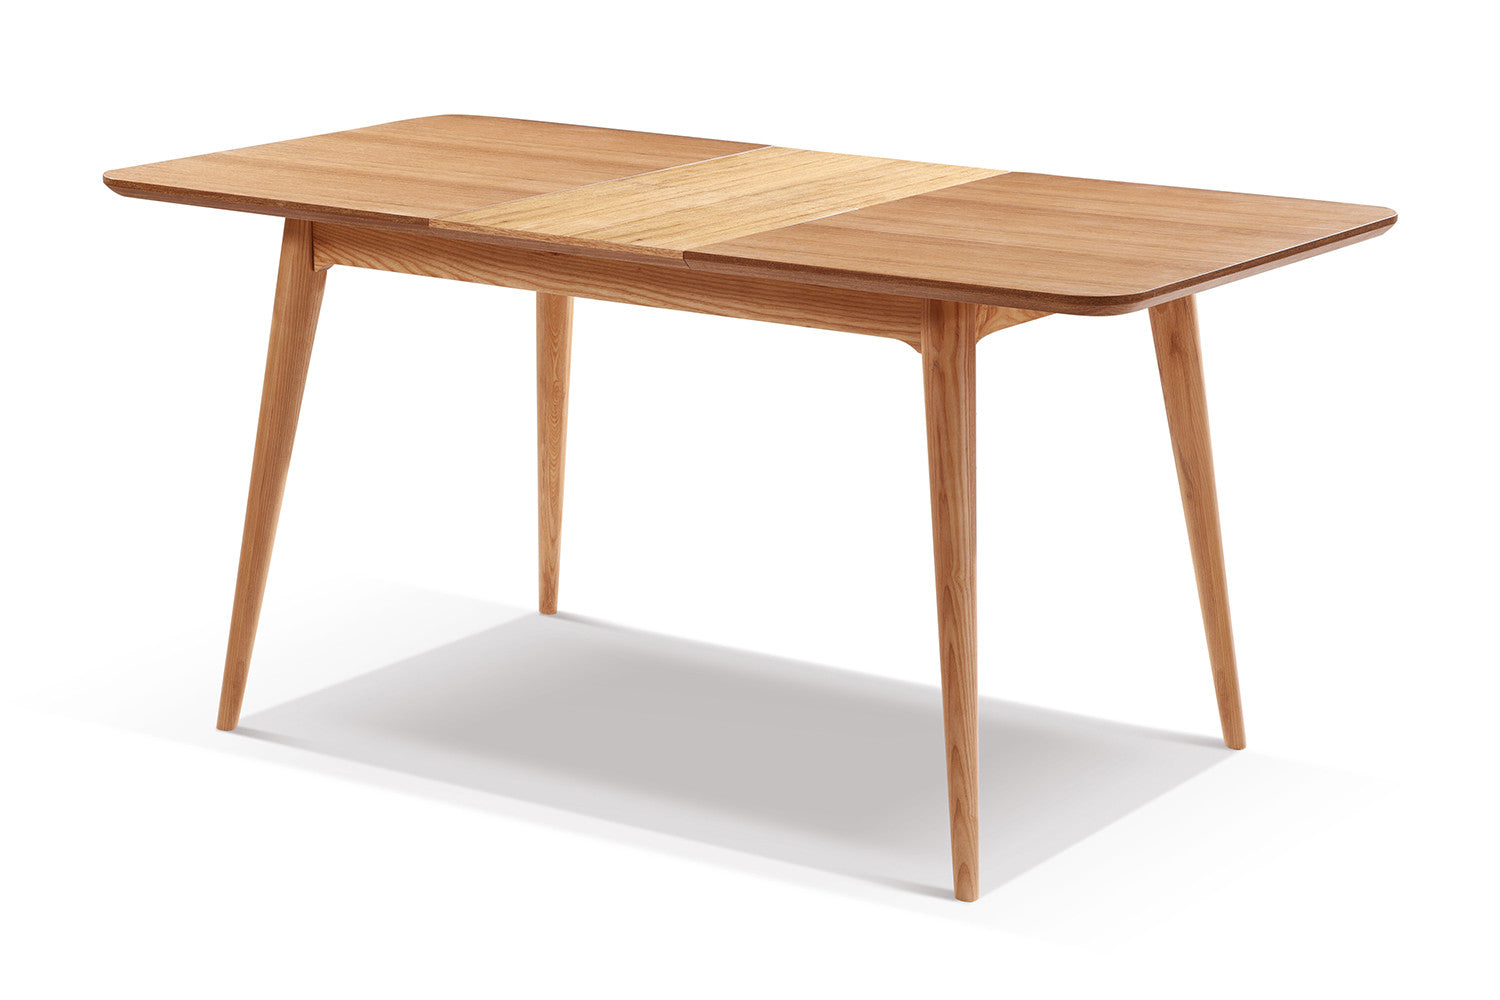 Table de salle manger extensible en bois adda dewarens for Table a manger extensible bois